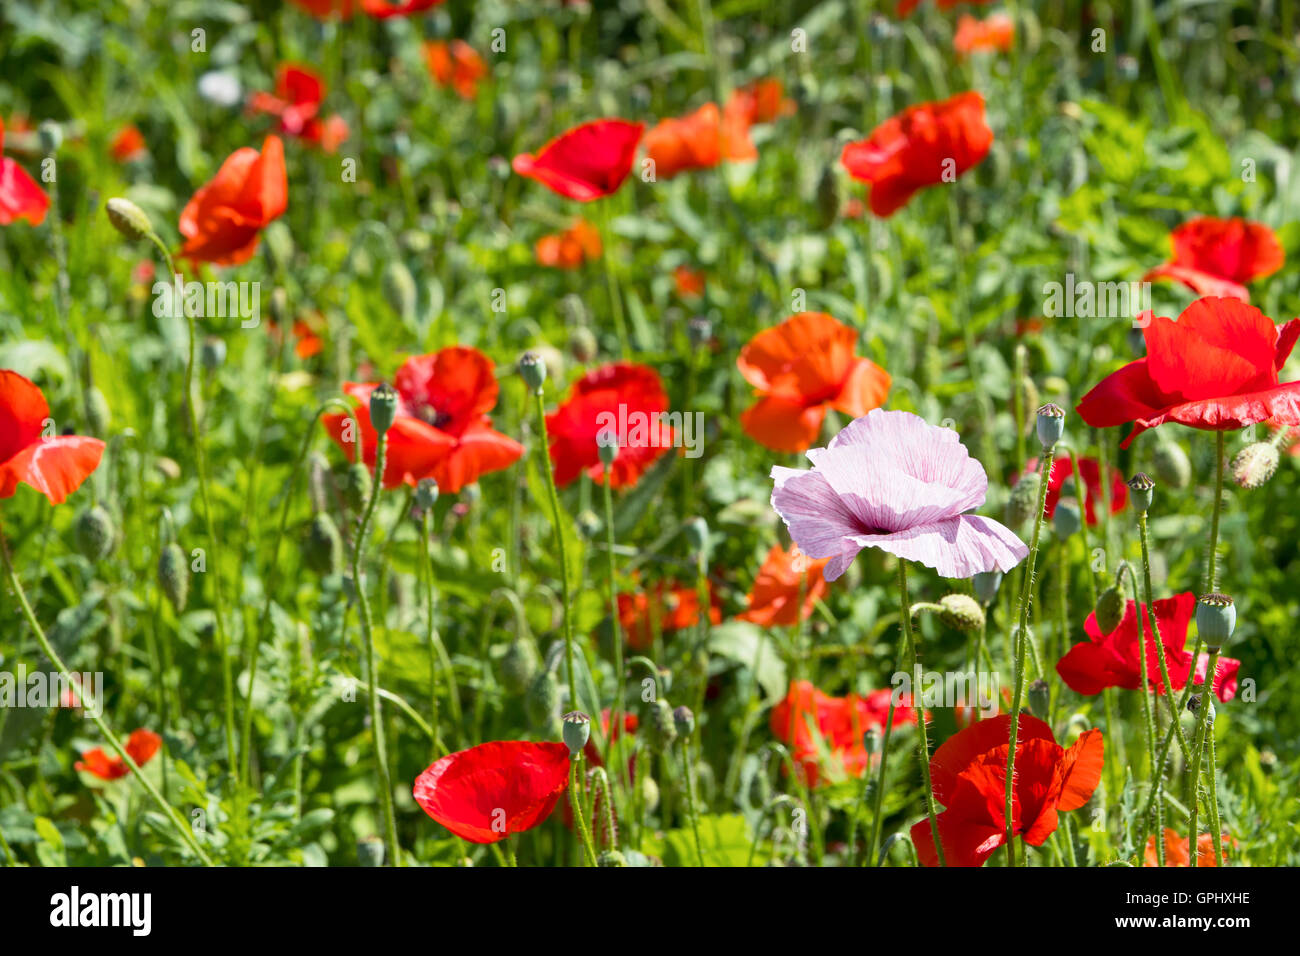 In flanders fields full of red poppies the symbol of world war i in flanders fields full of red poppies the symbol of world war i and the poem of john mcrae a canadien poet physician and soldier mightylinksfo